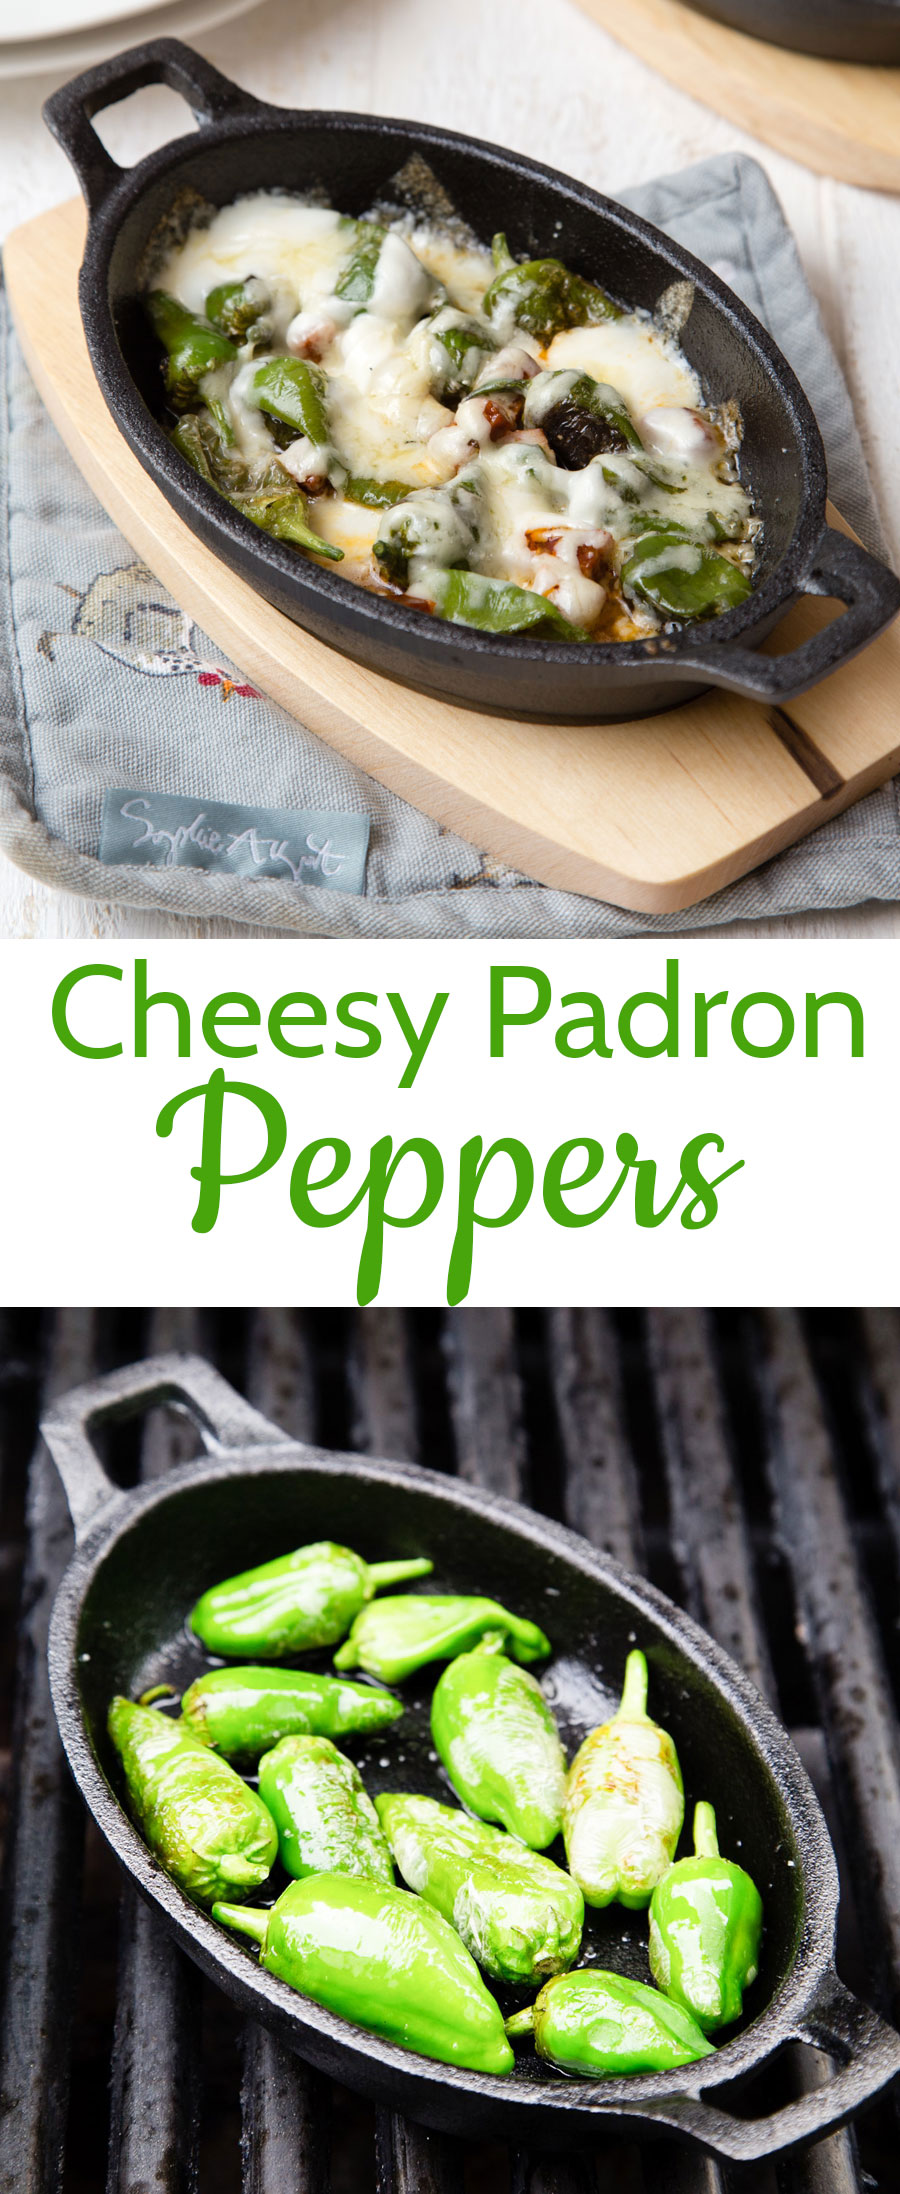 Melt in the mouth Padron peppers coated in melted cheese are so delicious and perfect for parties as an easy appetiser. Cook on the BBQ or on the stovetop.